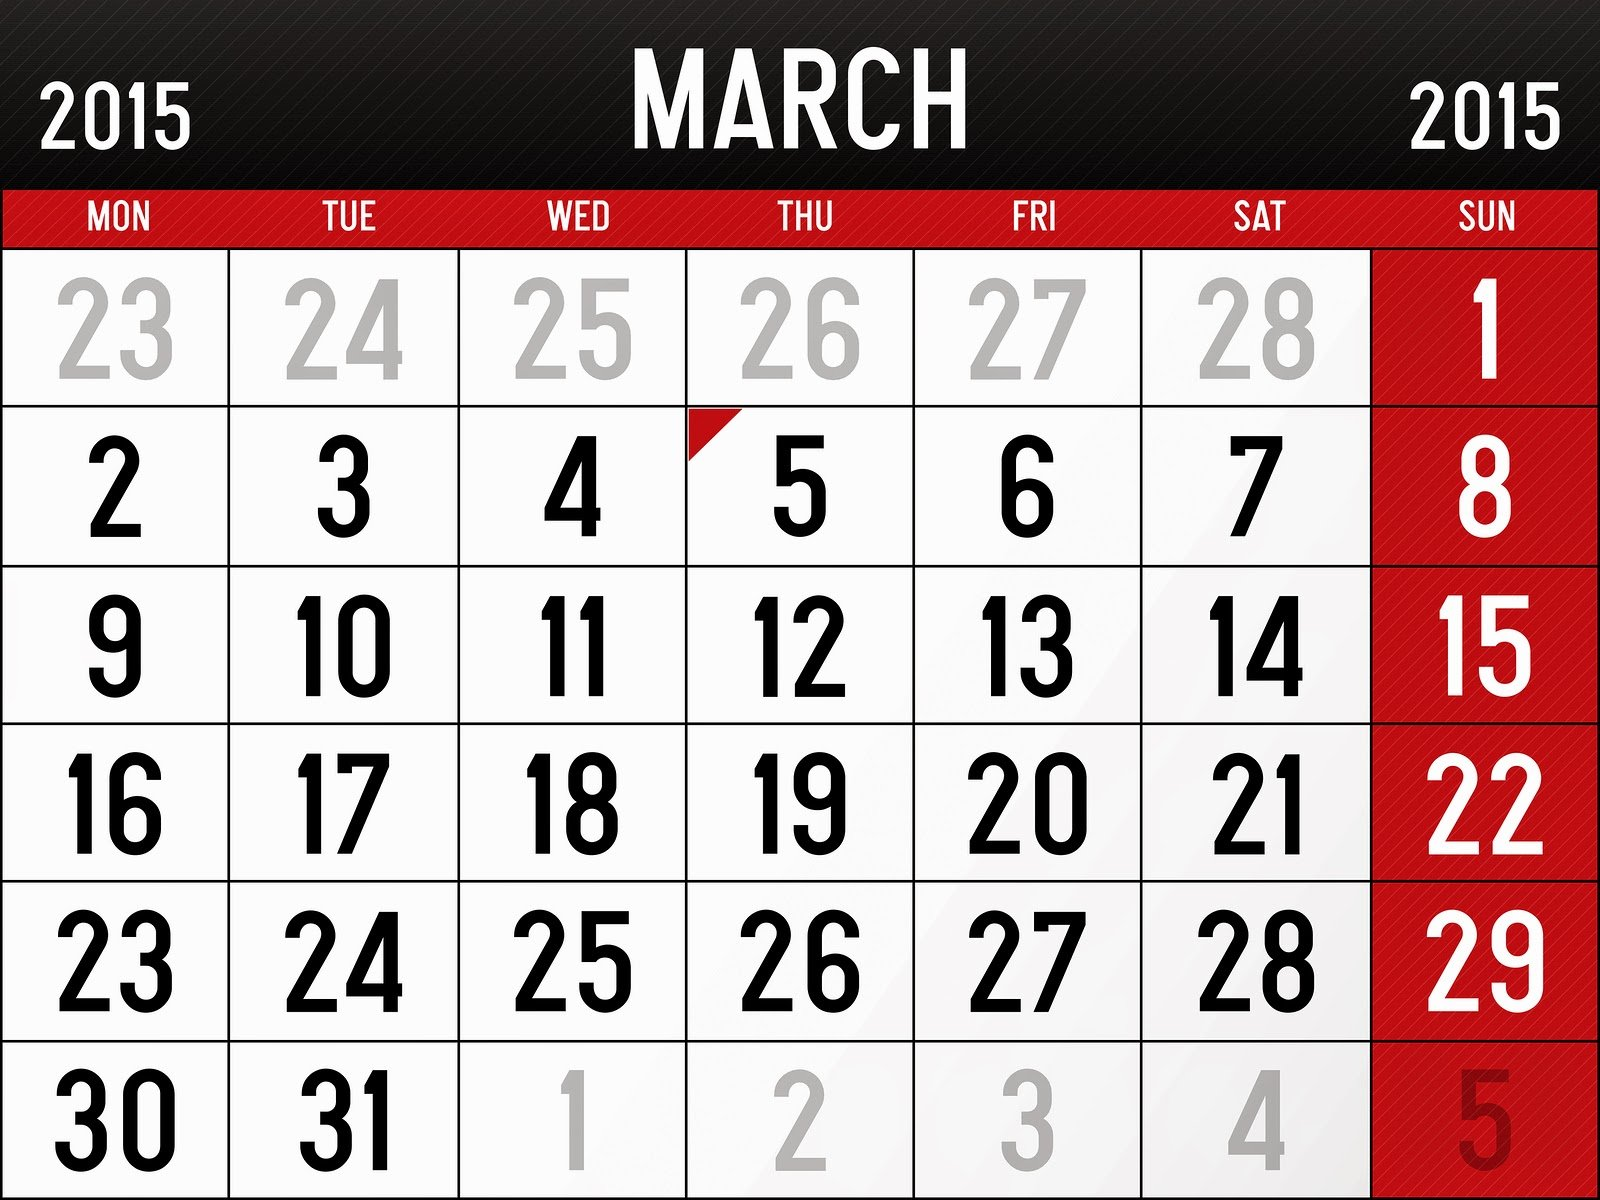 March 2015 Calendar Wallpaper Pictures and JPG GIF PNG Images Happy 1600x1200